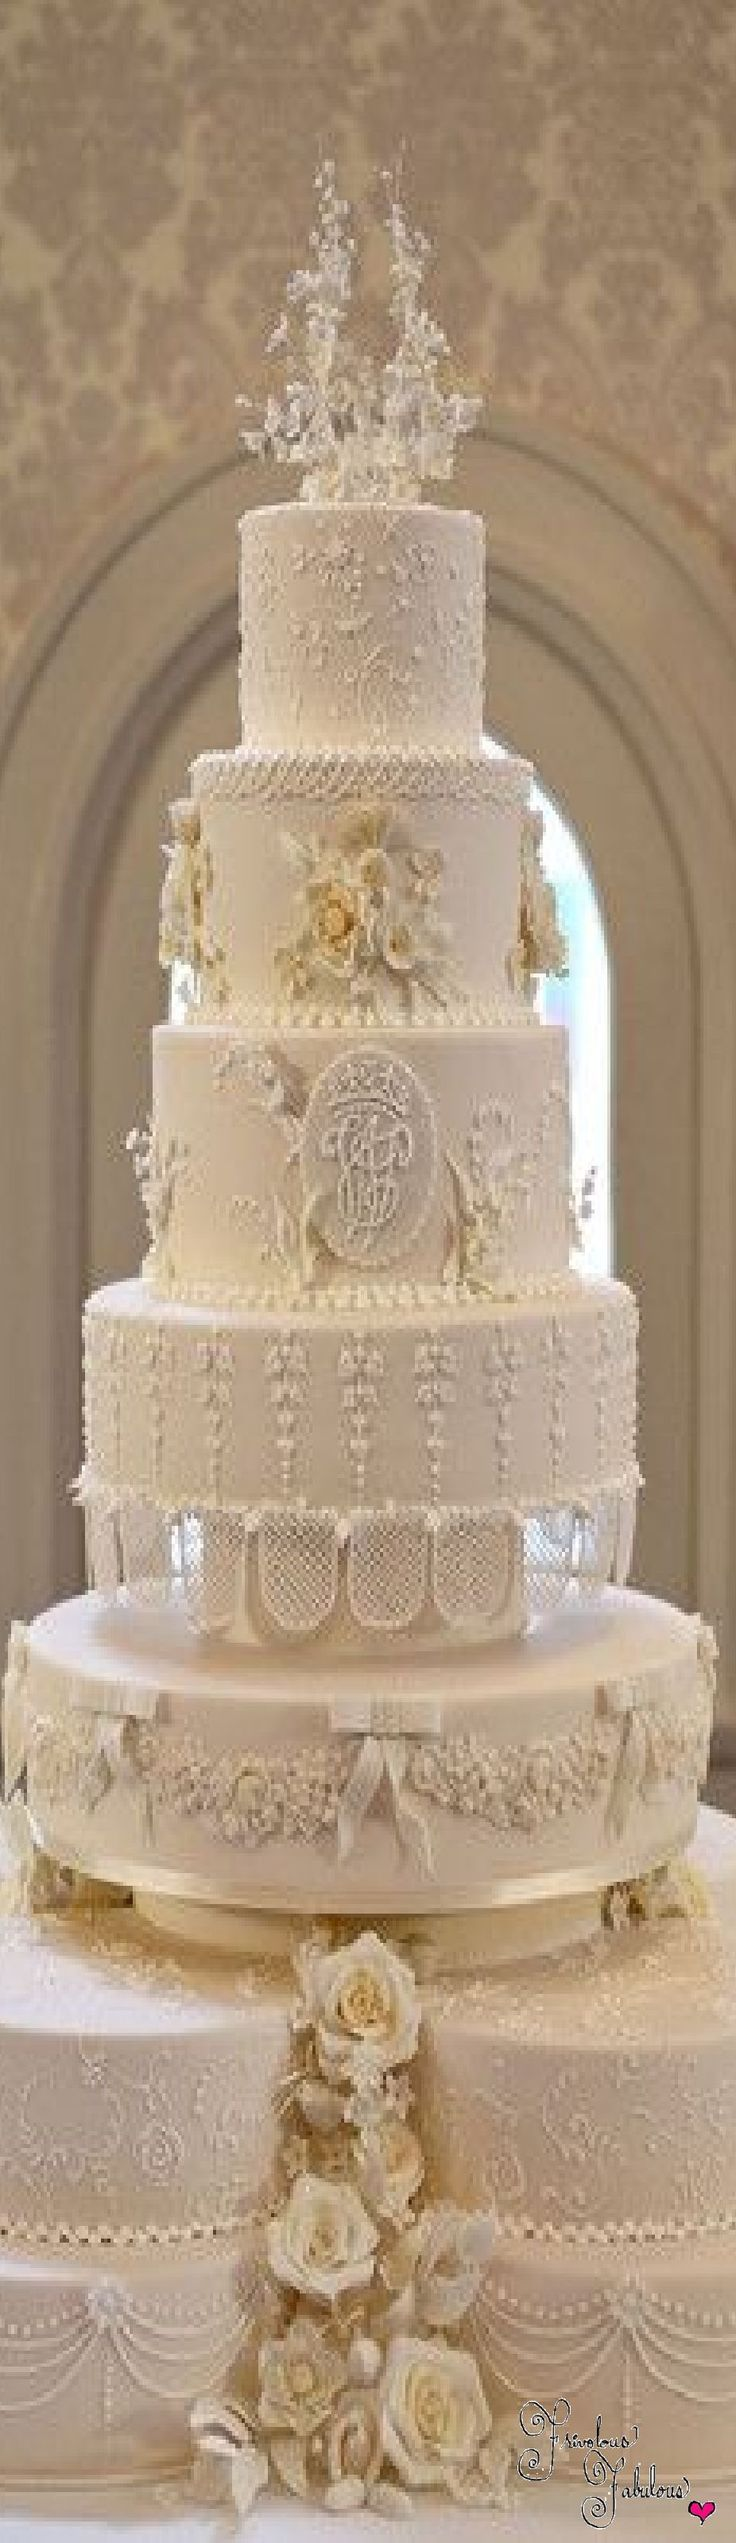 Indian Weddings Inspirations. White Royal Wedding Cake. Repinned by #indianweddingsmag indianweddingsmag.com #weddingcake